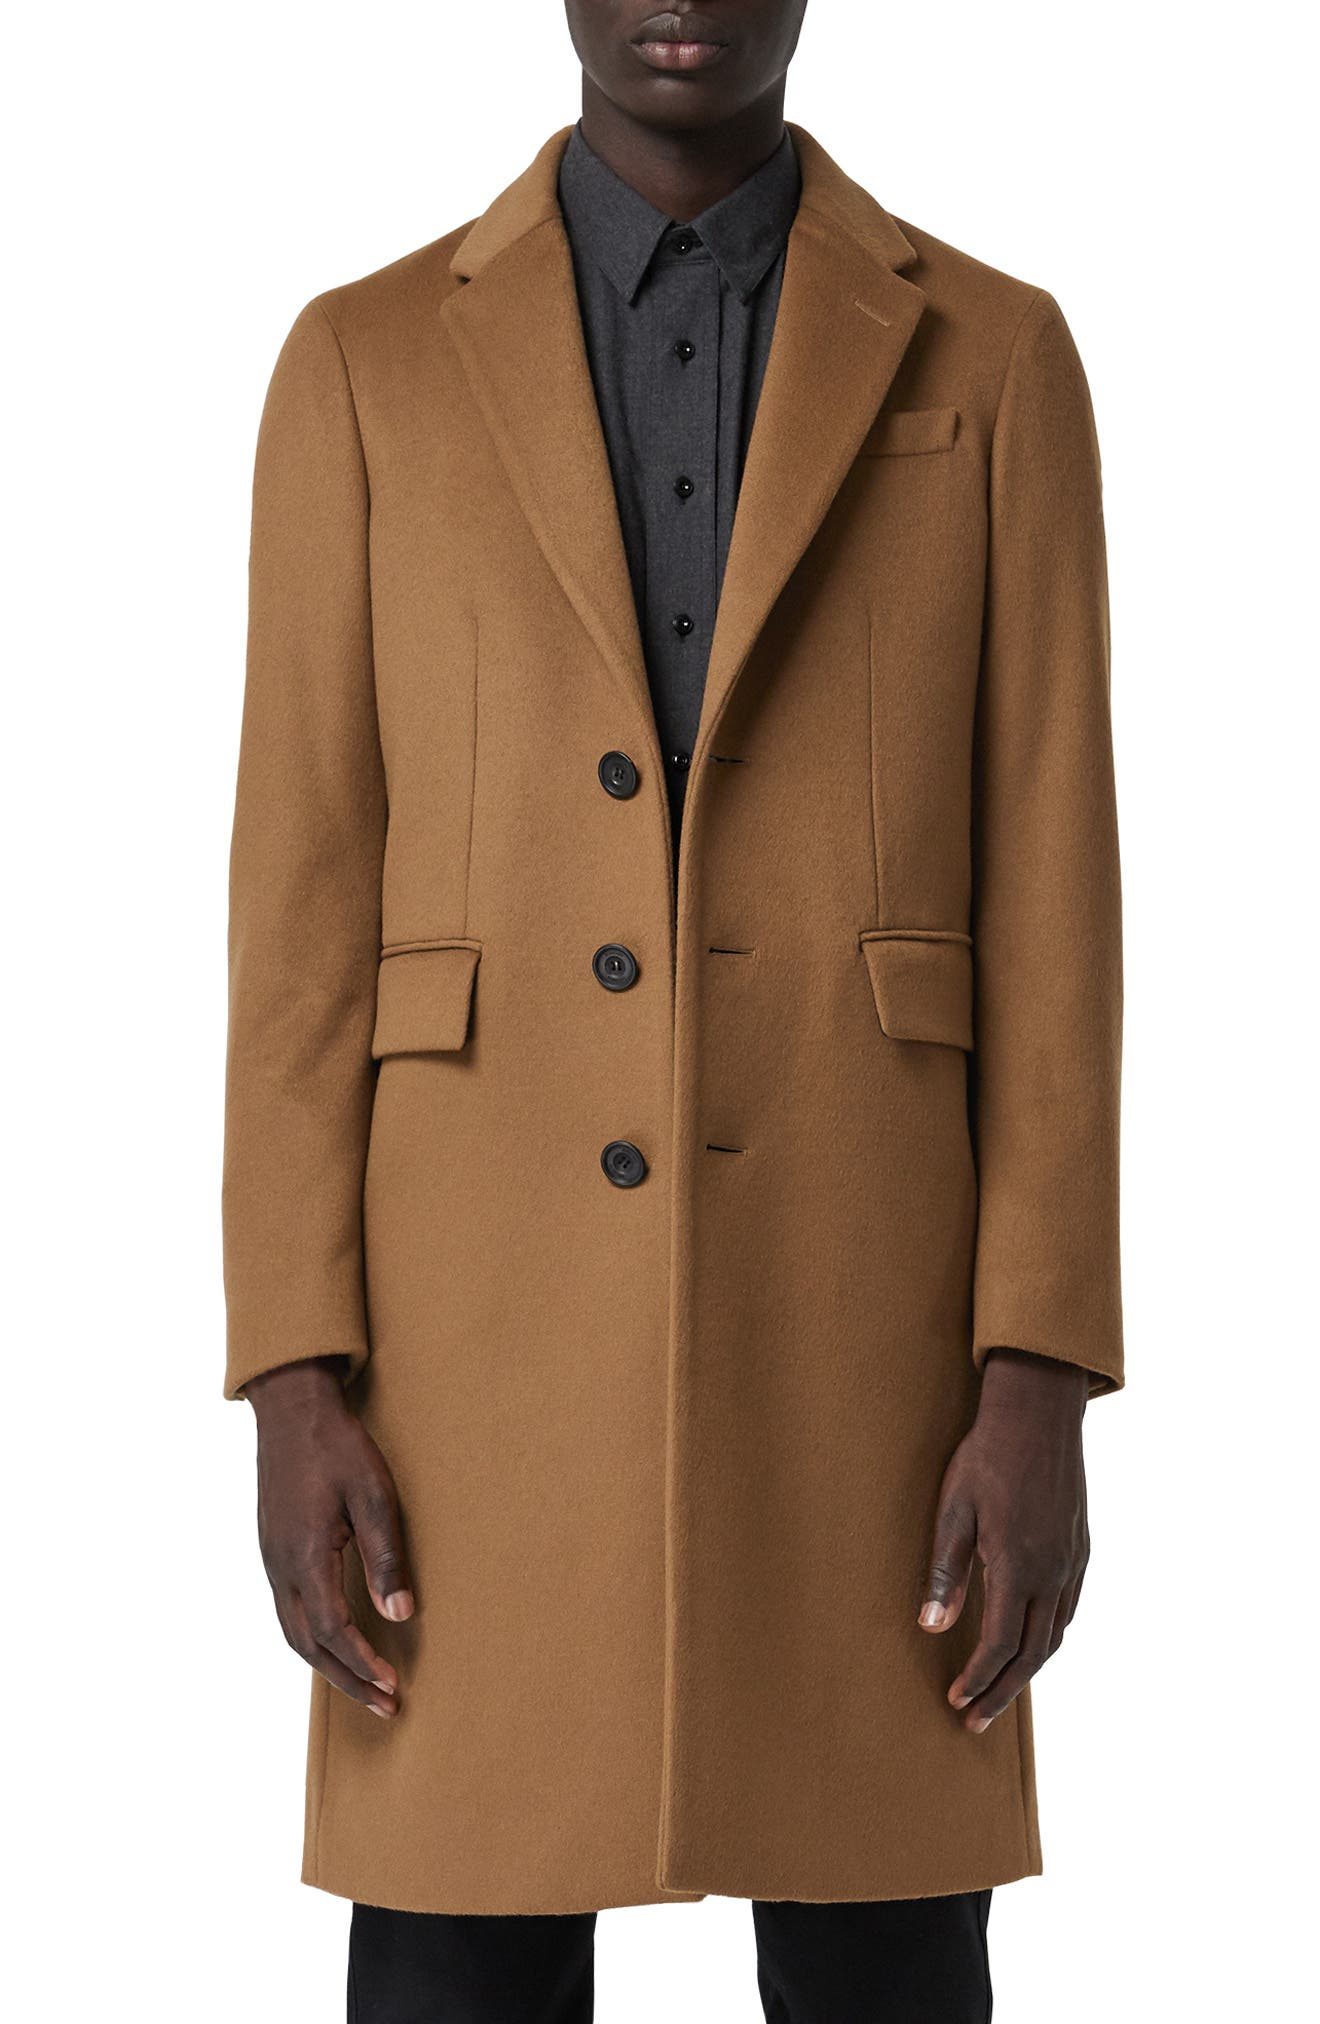 Halesowen Wool and Cashmere Overcoat,                             Main thumbnail 1, color,                             DARK CAMEL